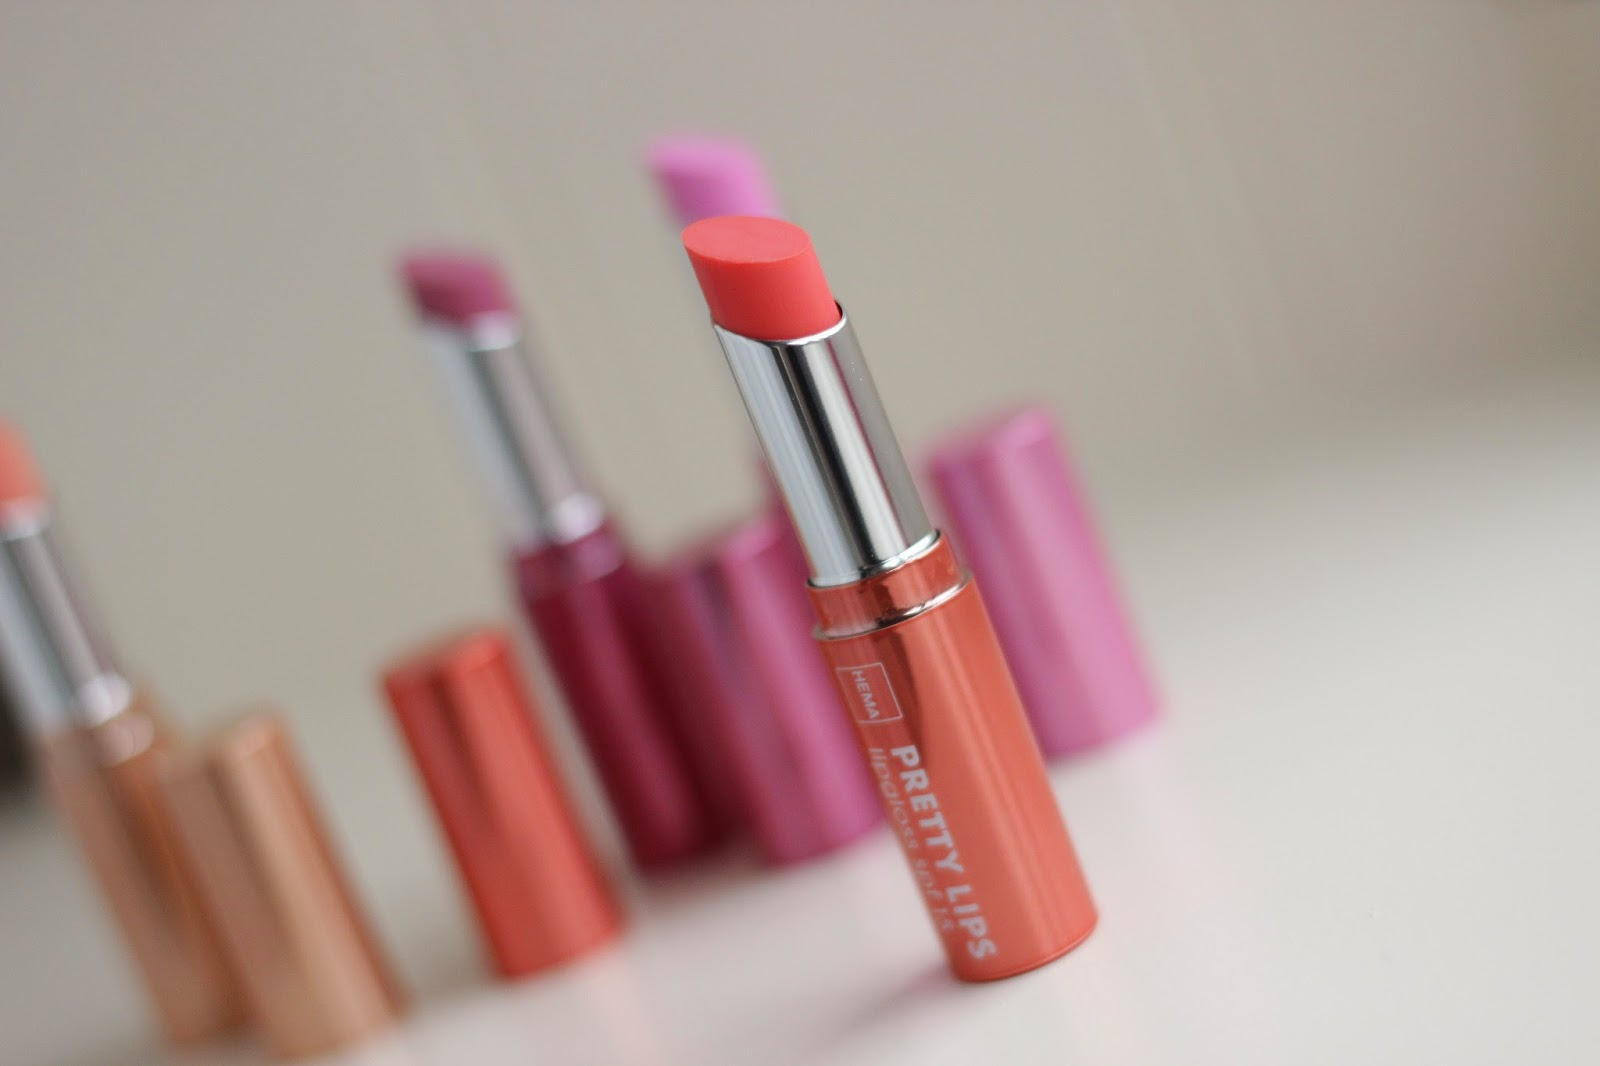 hema pretty lips lipgloss fiery sunset